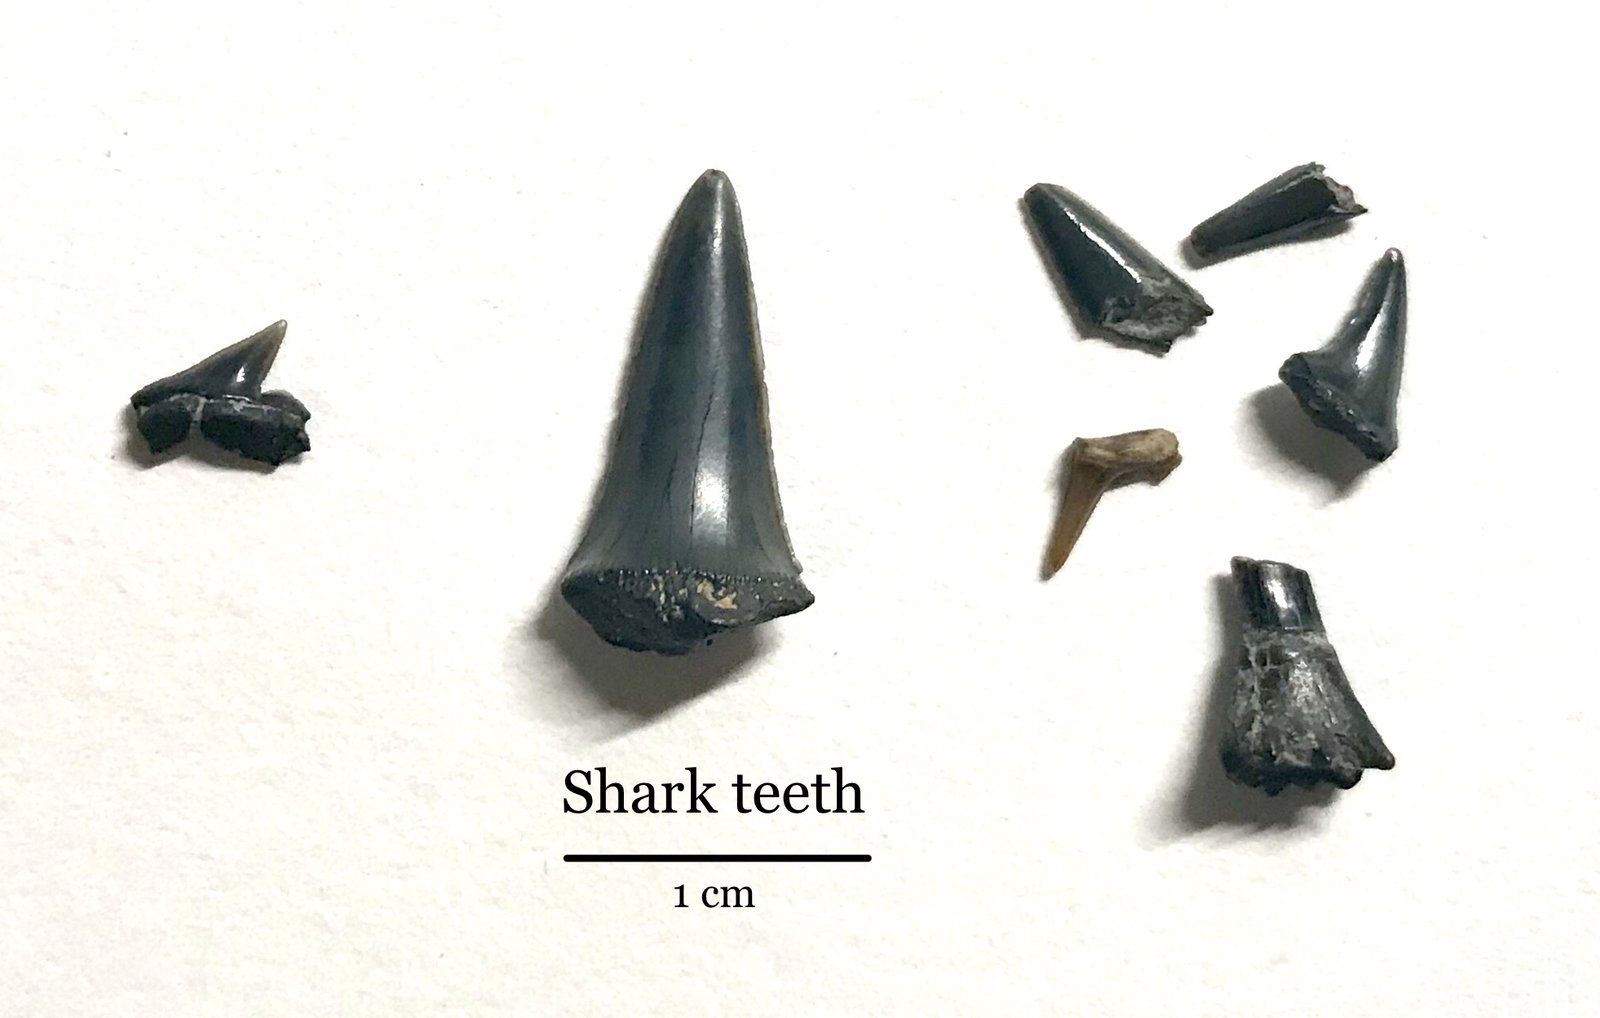 Shark teeth (and sawfish)